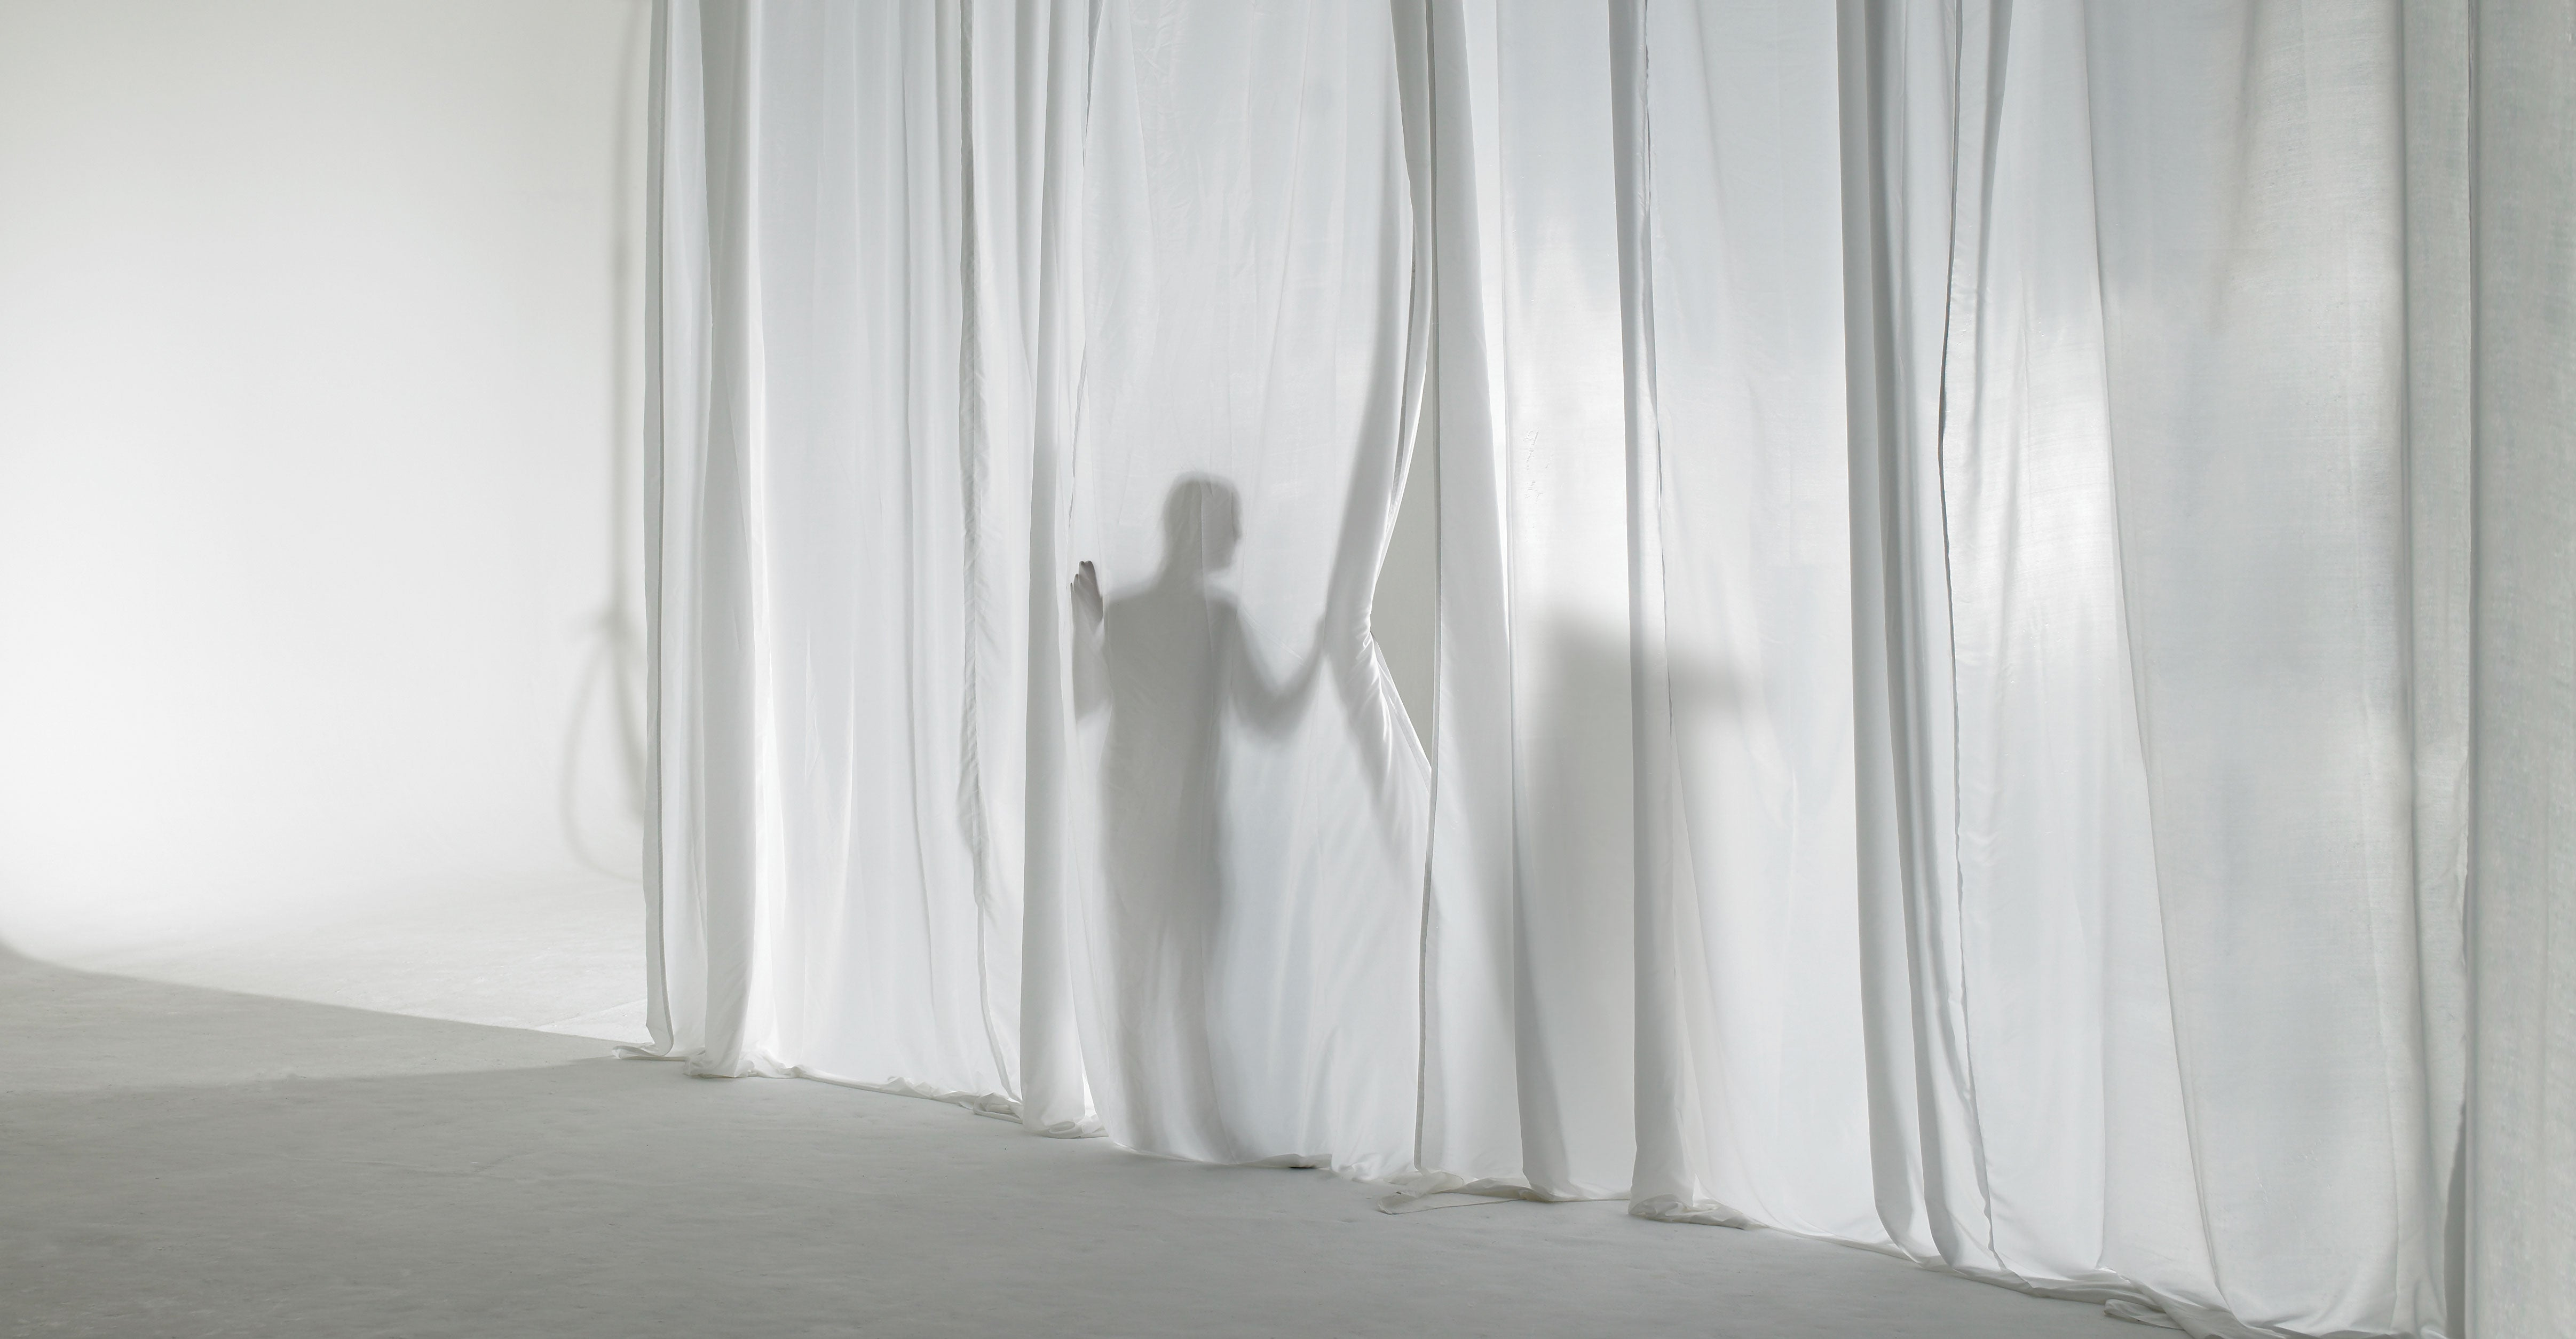 A silhouette of a man and an object can be seen on a curtain that's beginning to be pulled back.